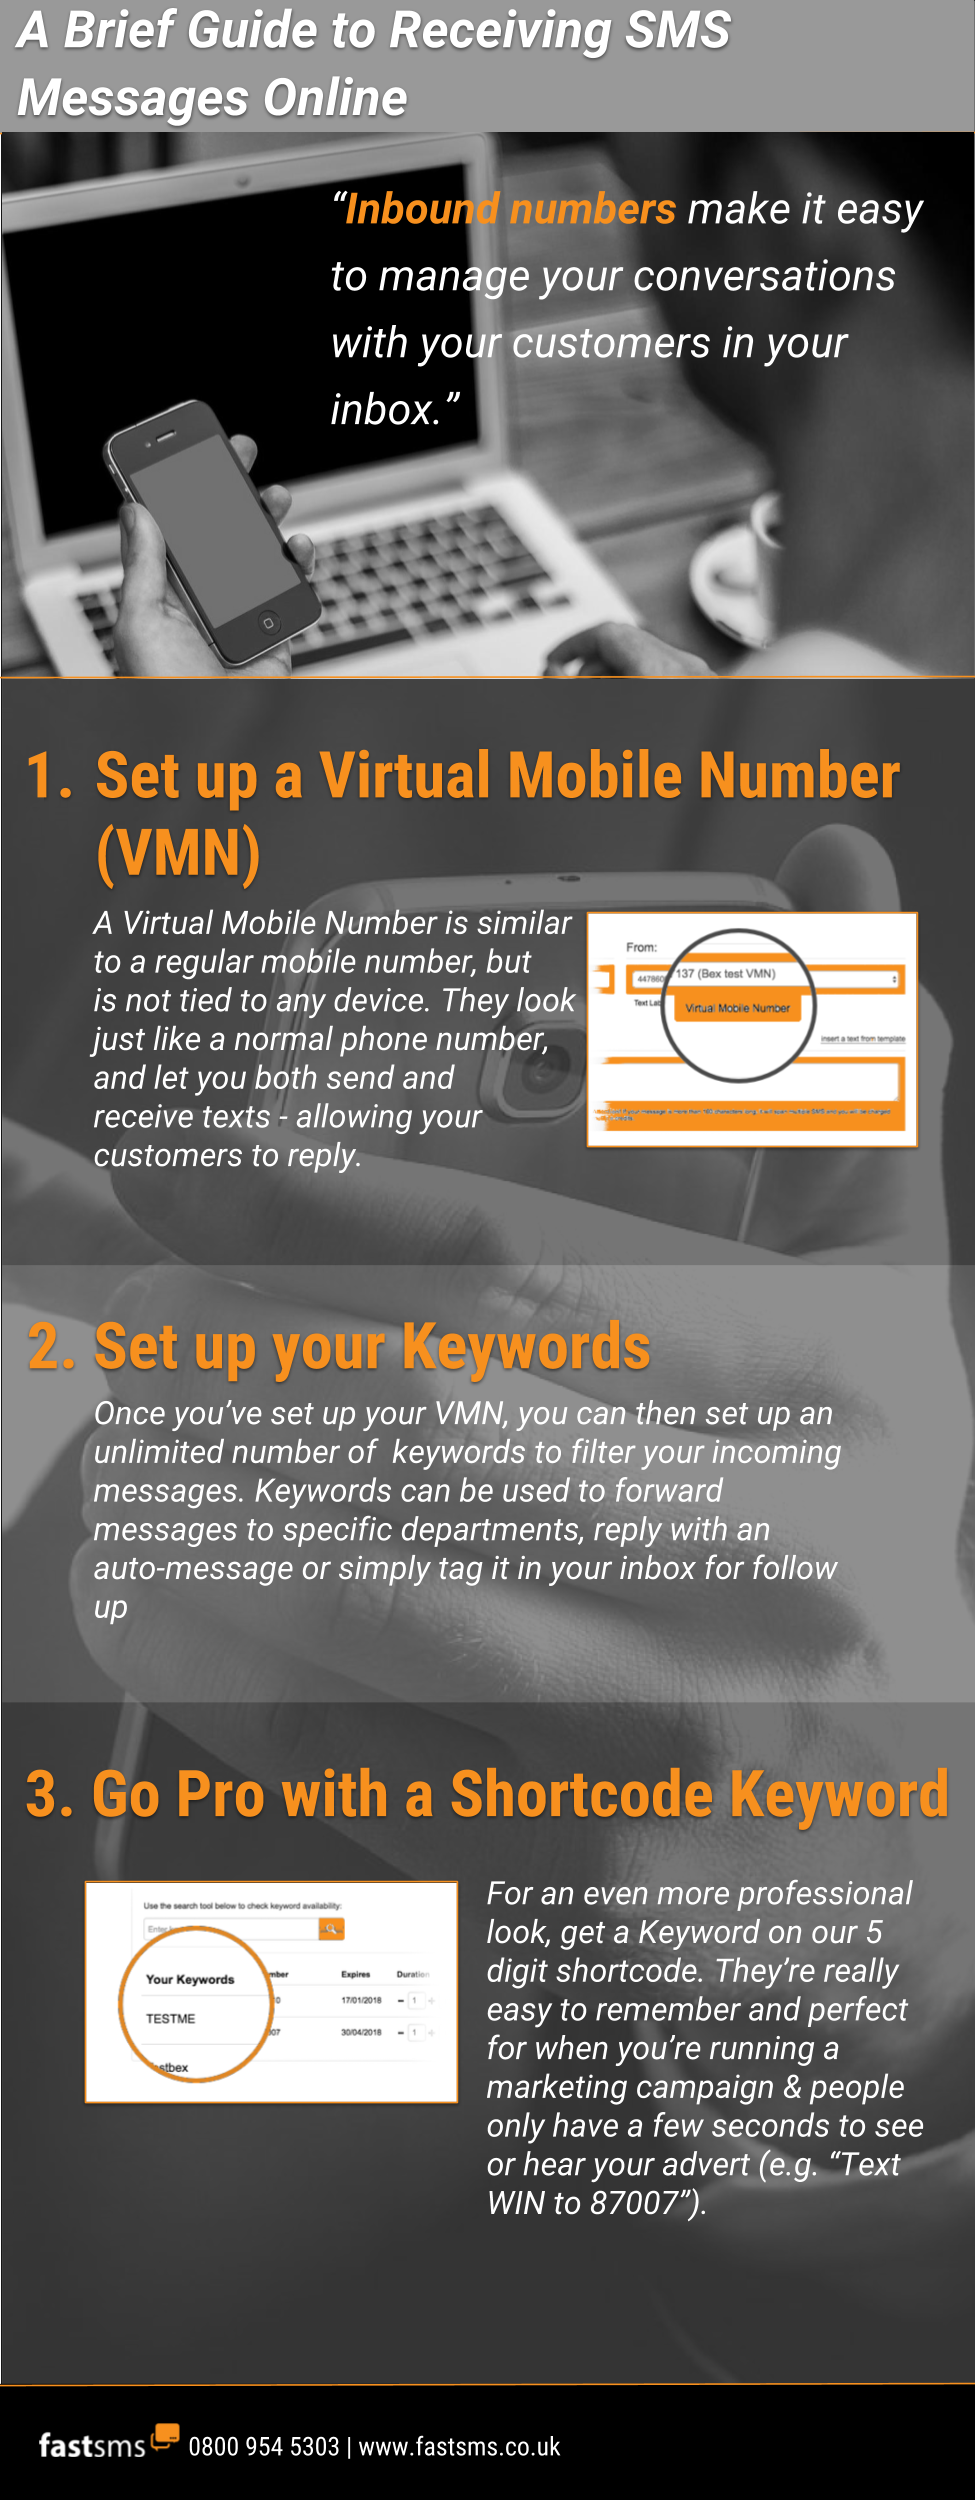 A brief guide to receiving SMS Messages online - infographic | Fastsms